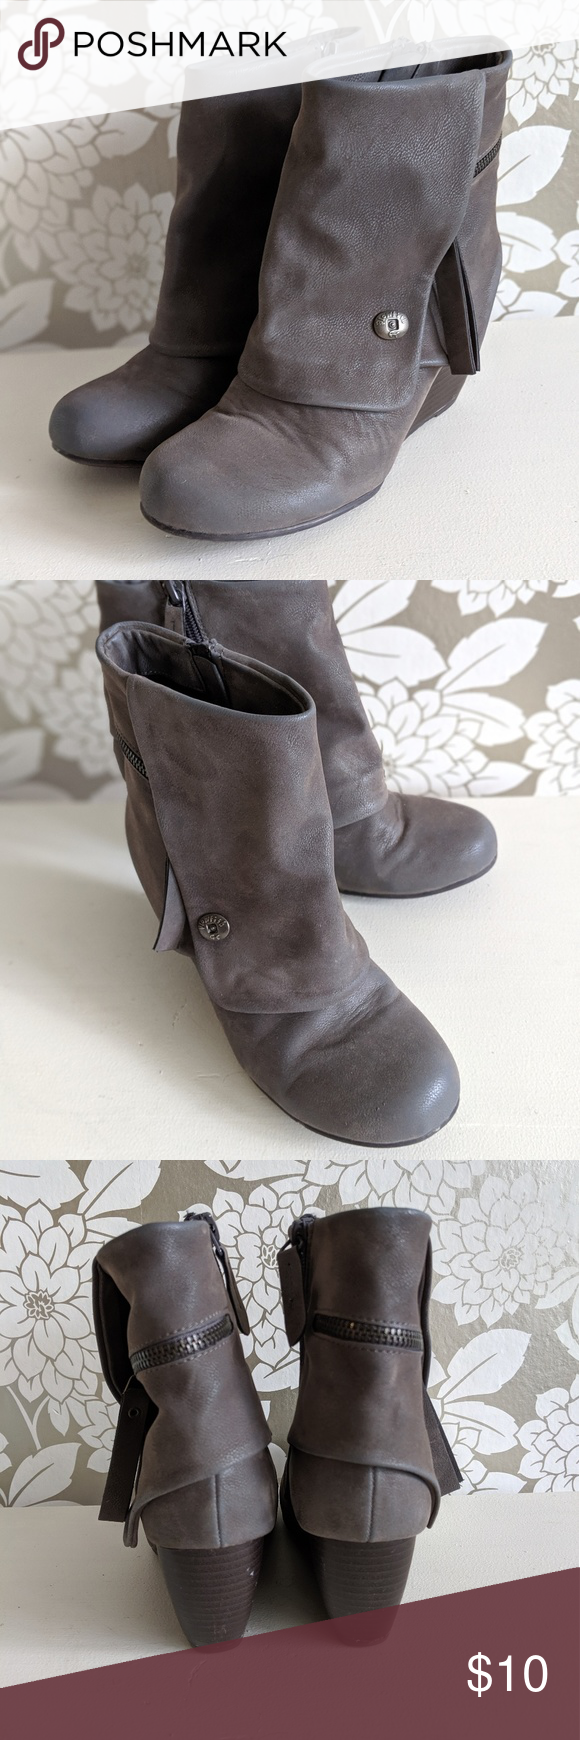 Blowfish Ankle Boots Grey ankle boots with zipper closure, soft faux suede material, good used condition with white scuffs noted to left heel as shown, very comfortable and cute with skinny jeans or leggings Blowfish Shoes Ankle Boots & Booties #skinnyjeansandankleboots